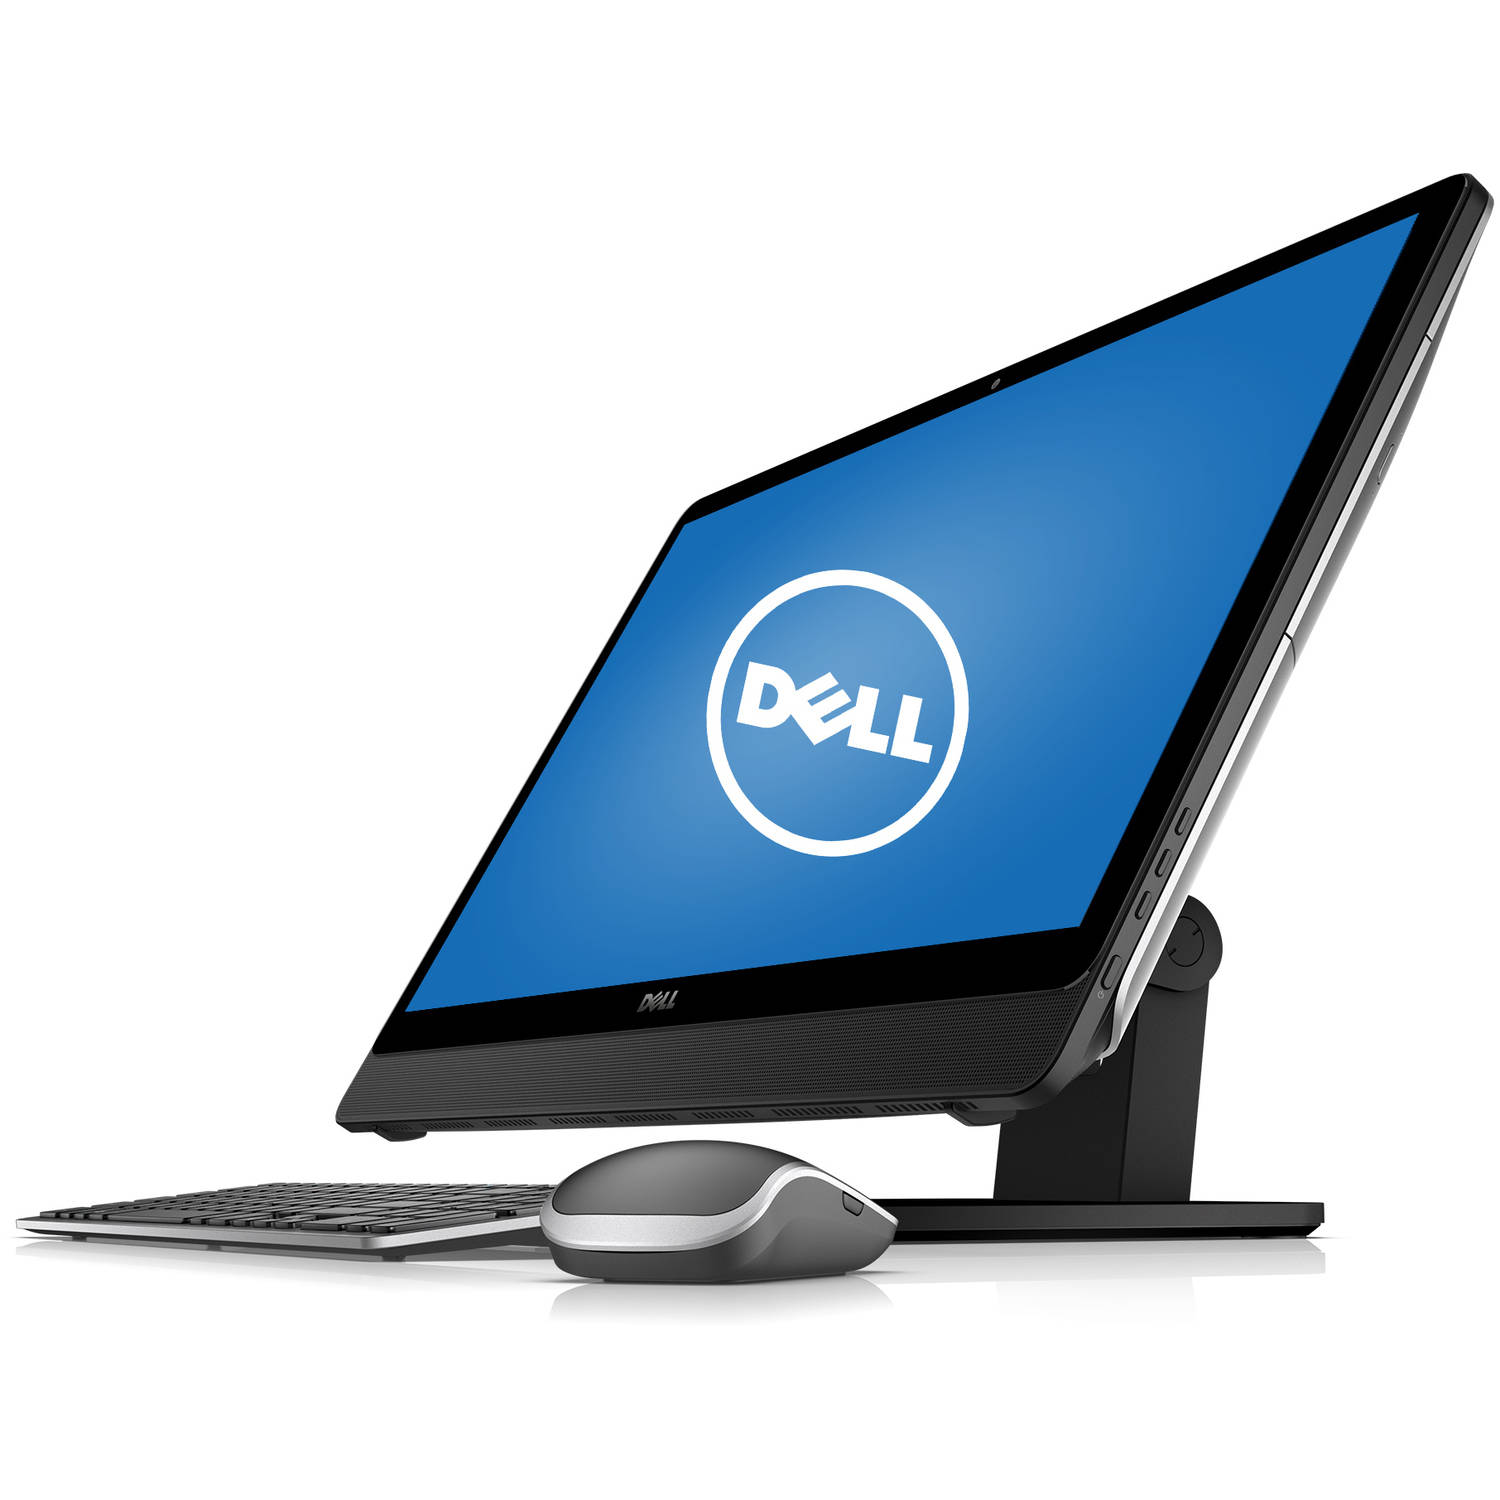 "Dell Inspiron 5459 i5459-7020SLV All-in-One Desktop PC with Intel Core i7-6700T Processor, 12GB Memory, 23.8"" Touchscreen, 1TB Hard Drive and Windows 10"